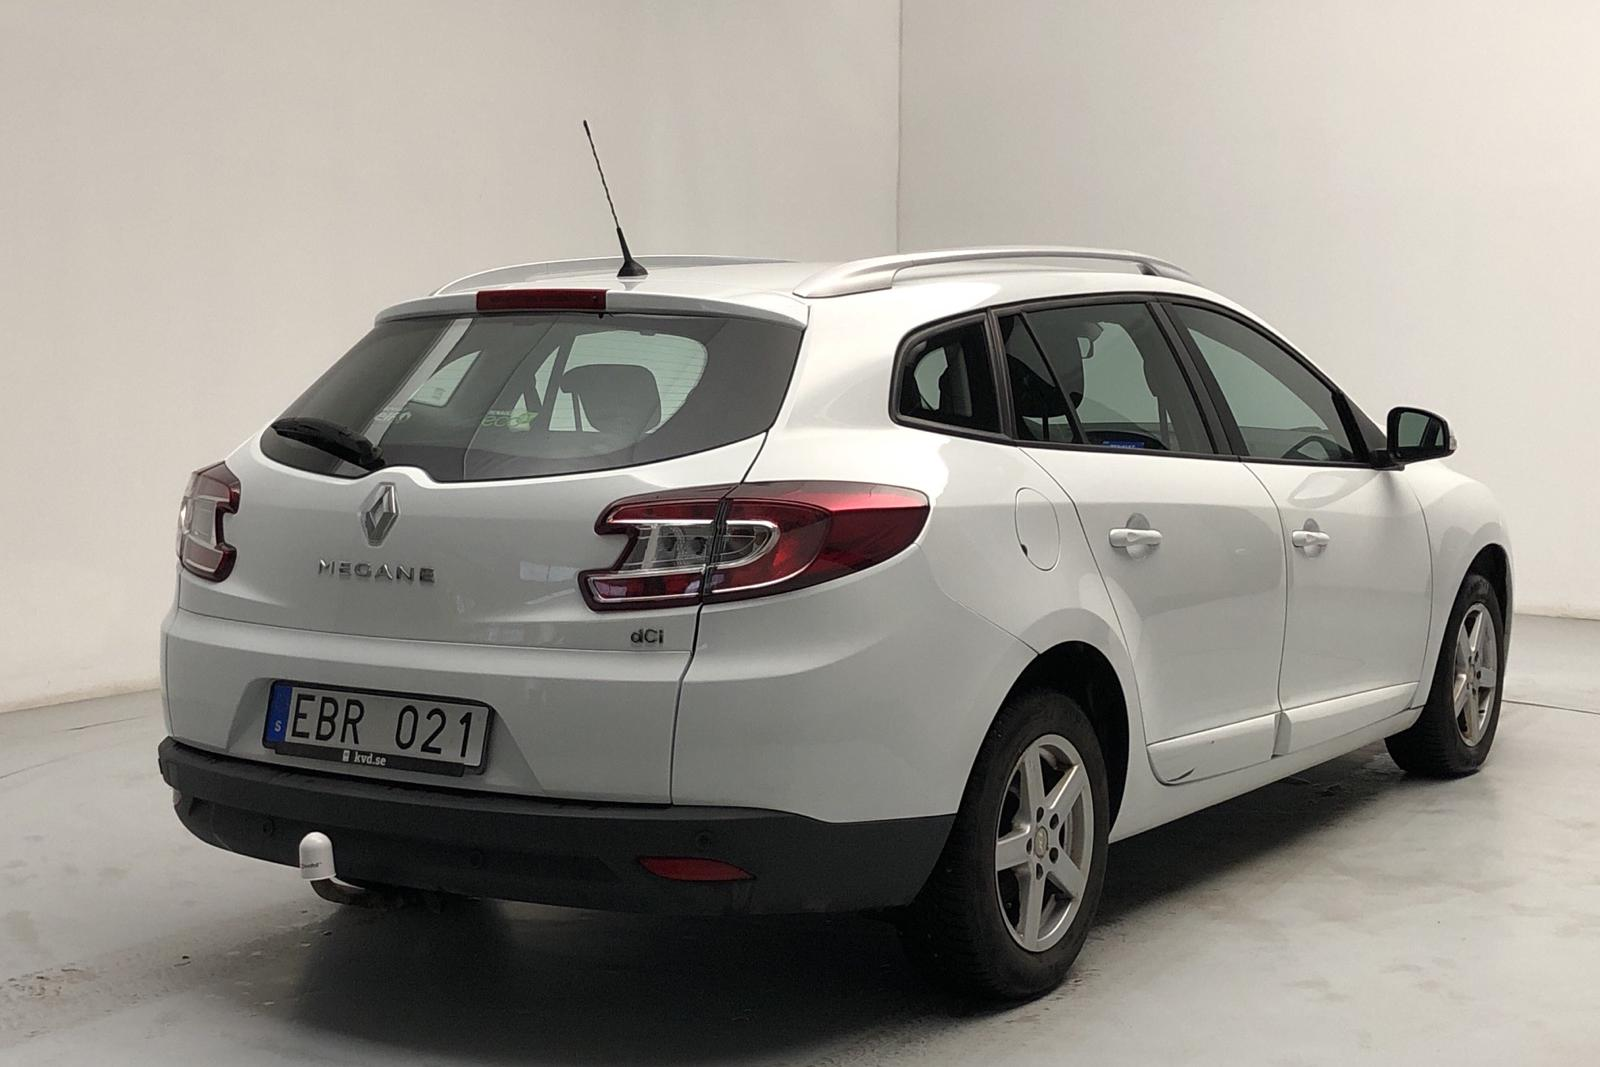 Renault Mégane Phas III 1.5 dCi ESM Sports Tourer (110hk) - 96 760 km - Manual - white - 2014